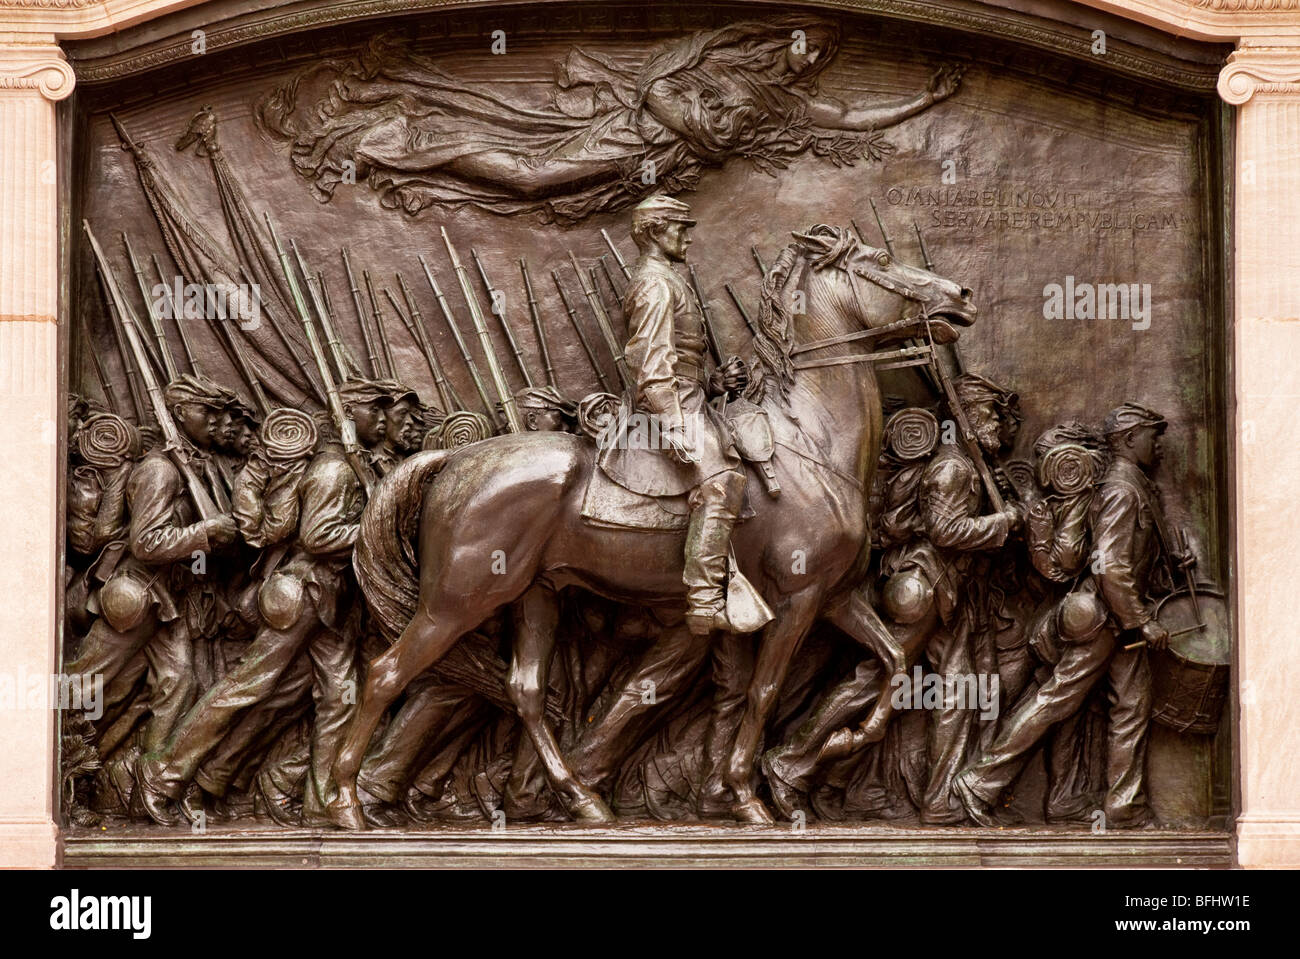 Memorial sculpture honoring the Black Soldiers of the 54th regiment from Massachusetts who fought during the American - Stock Image